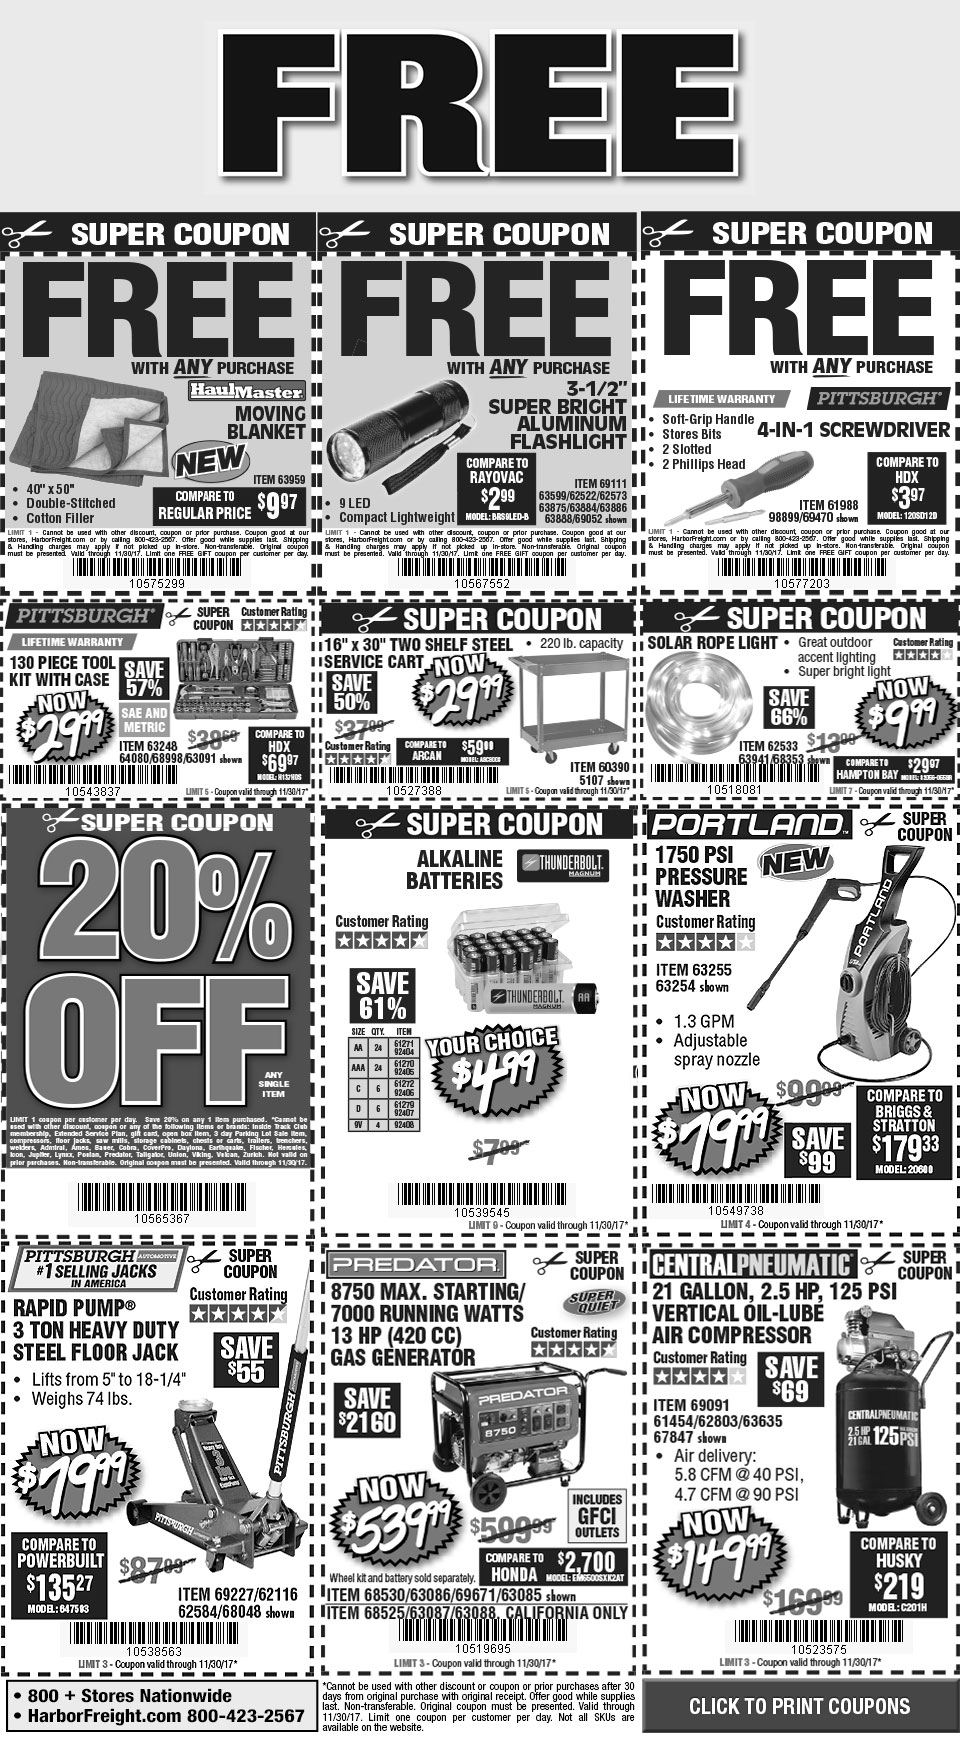 Digital Savings and Coupons from Harbor Freight – Coupon Disclaimer